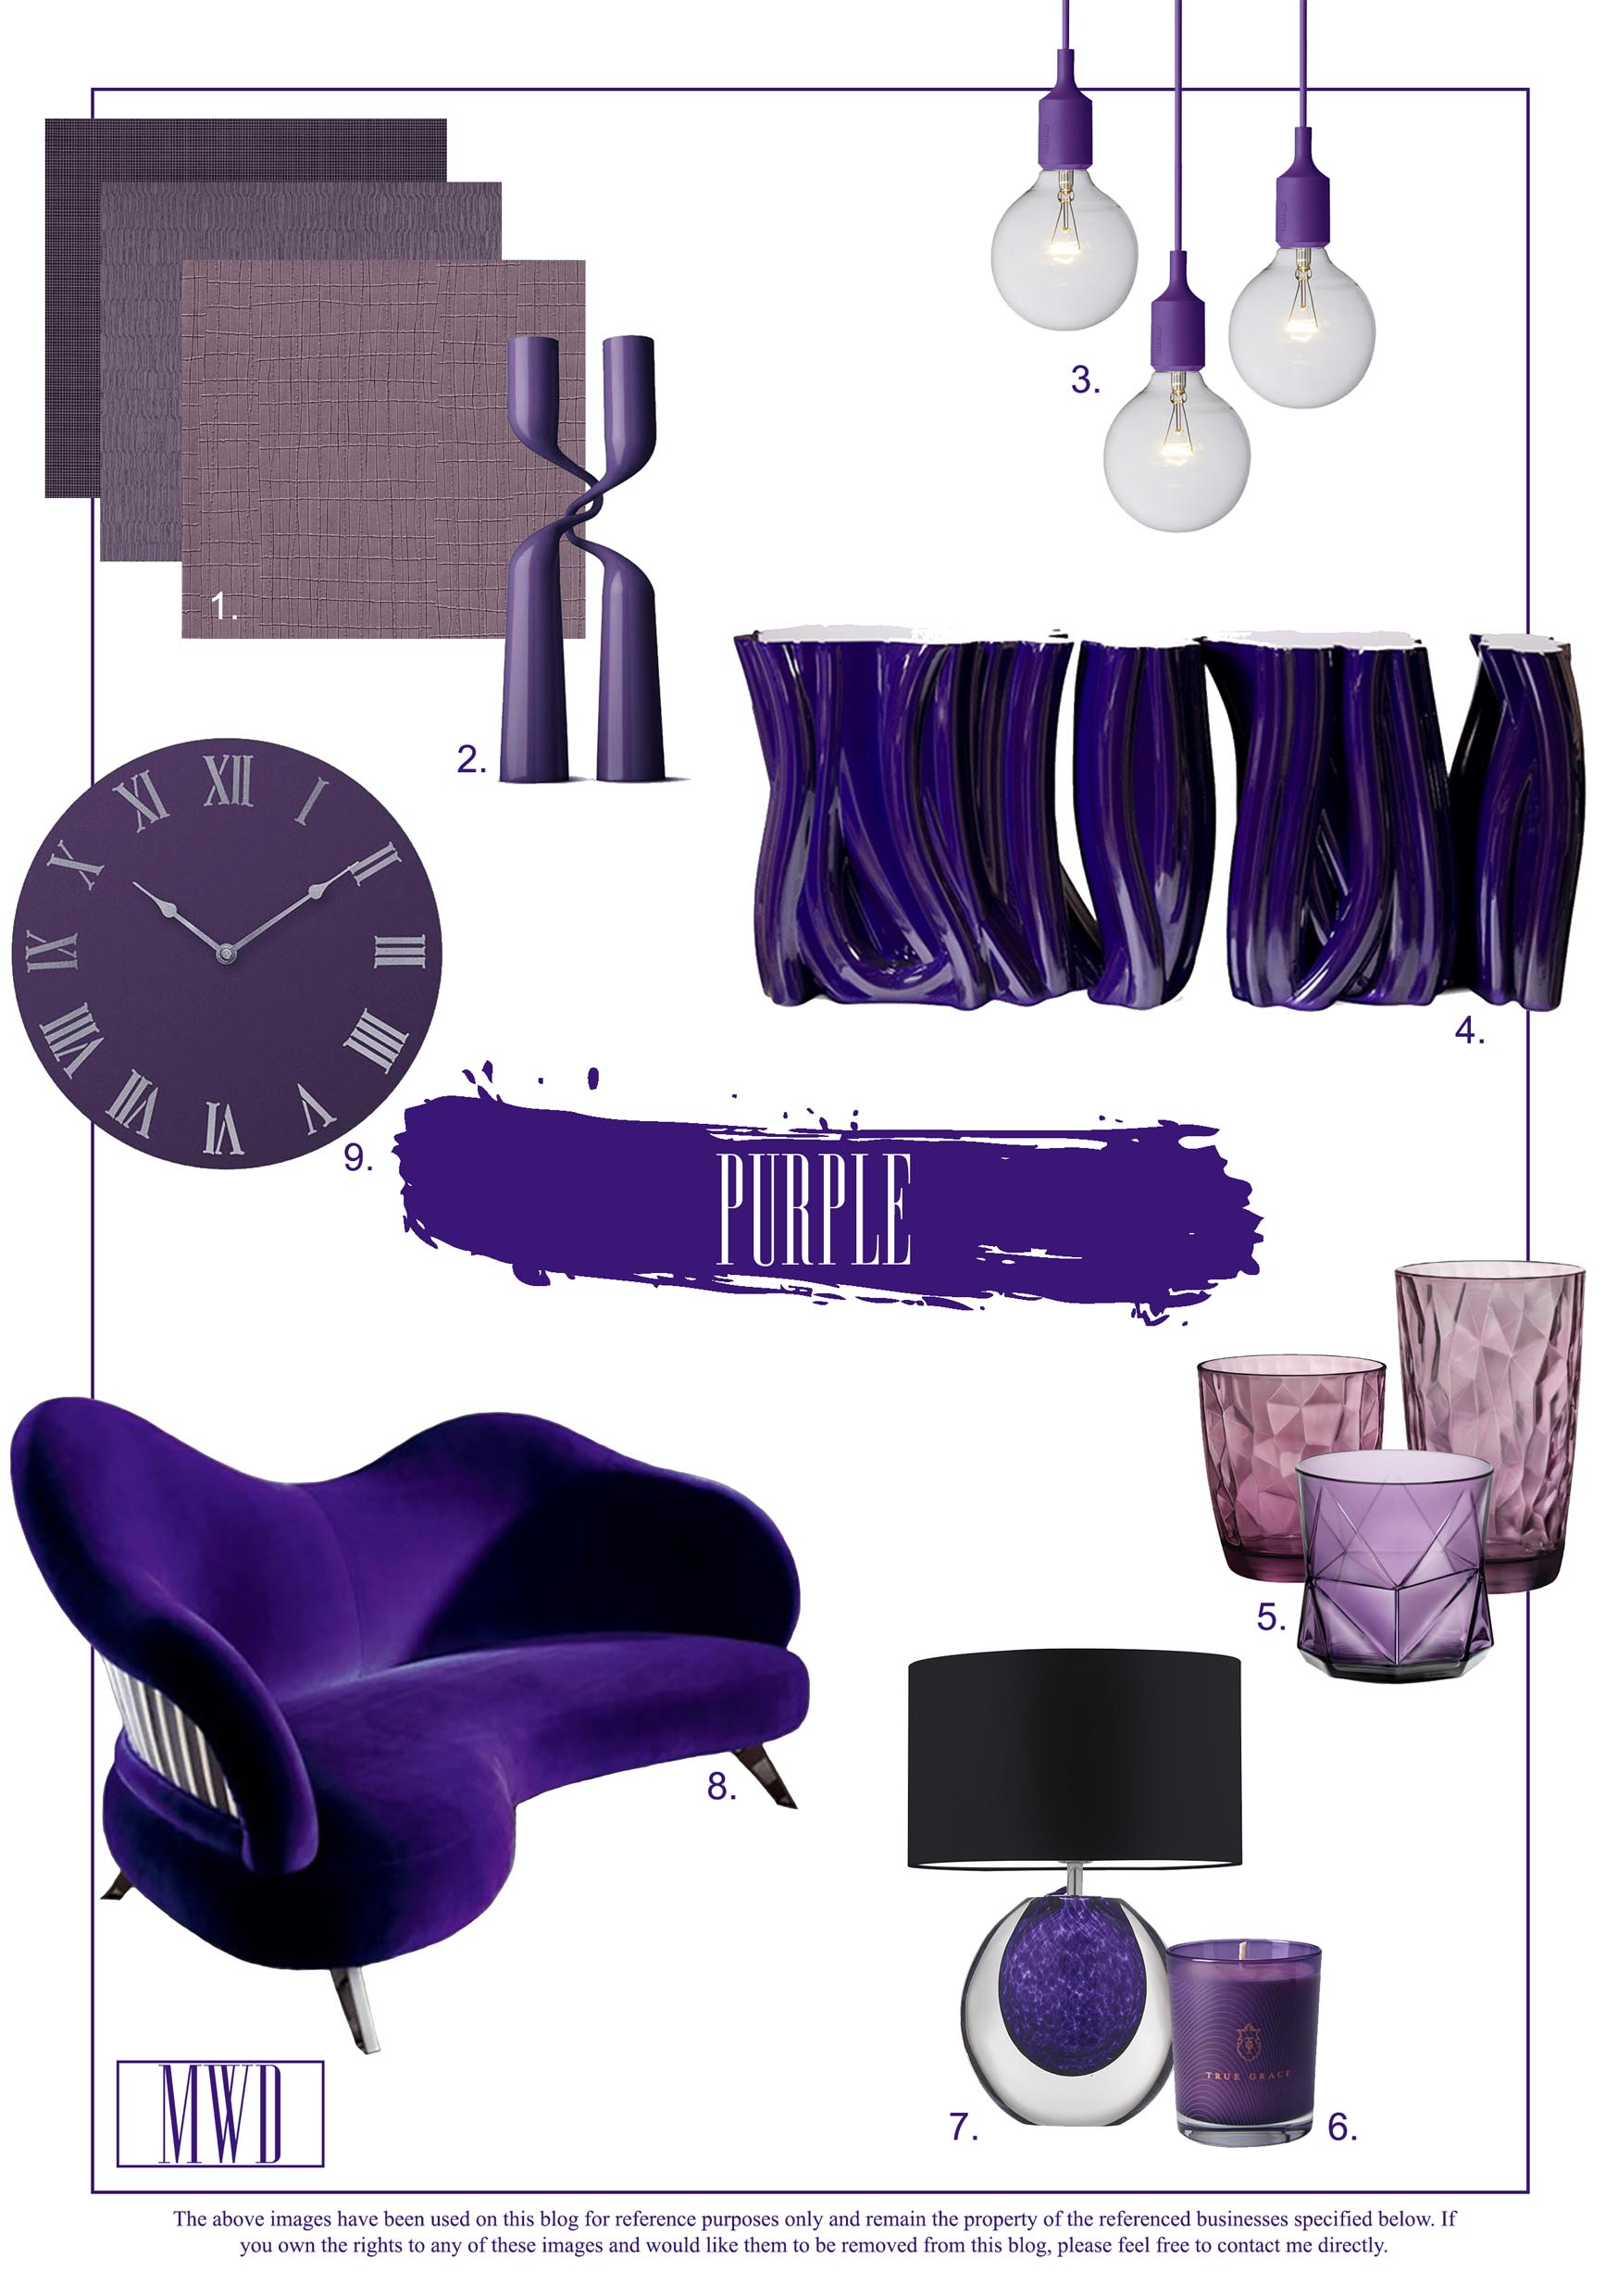 Purple Interior Design, Furniture and decorating ideas for the home